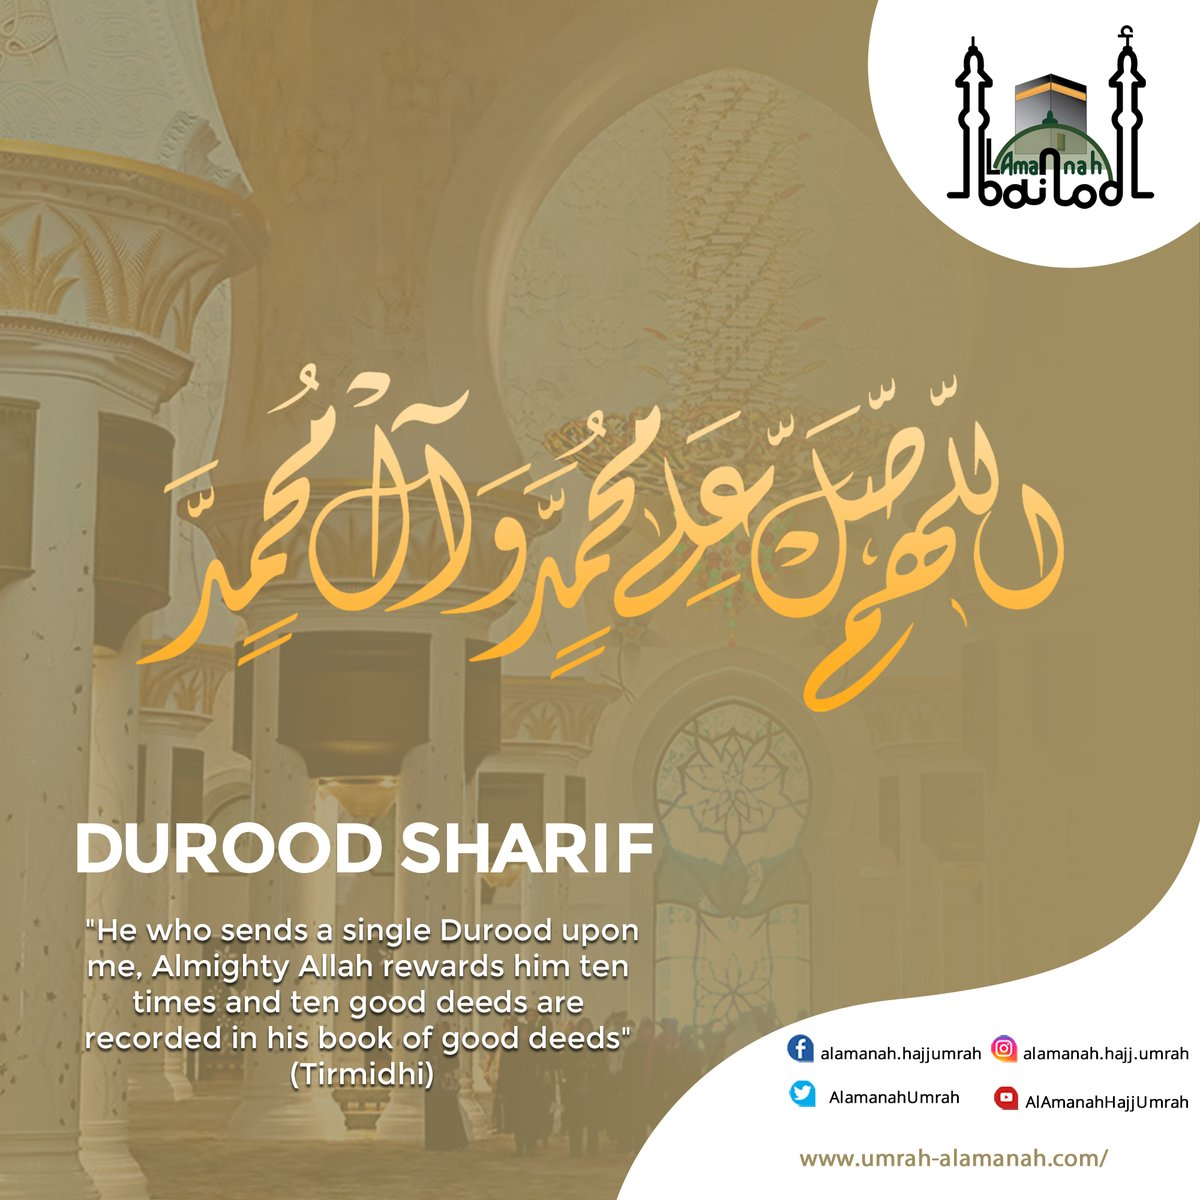 "The Prophet Mohammad (SAW) said, ""He who sends a single Durood upon me, Almighty Allah rewards him ten times and ten good deeds are recorded in his book of good deeds"". (Tirmidhi) #JummahMubarak #duroodsharif   #islamicqoute #i̇slam  #makkah #madinah #hajj #umrah https://t.co/CVoUbDoxf1"